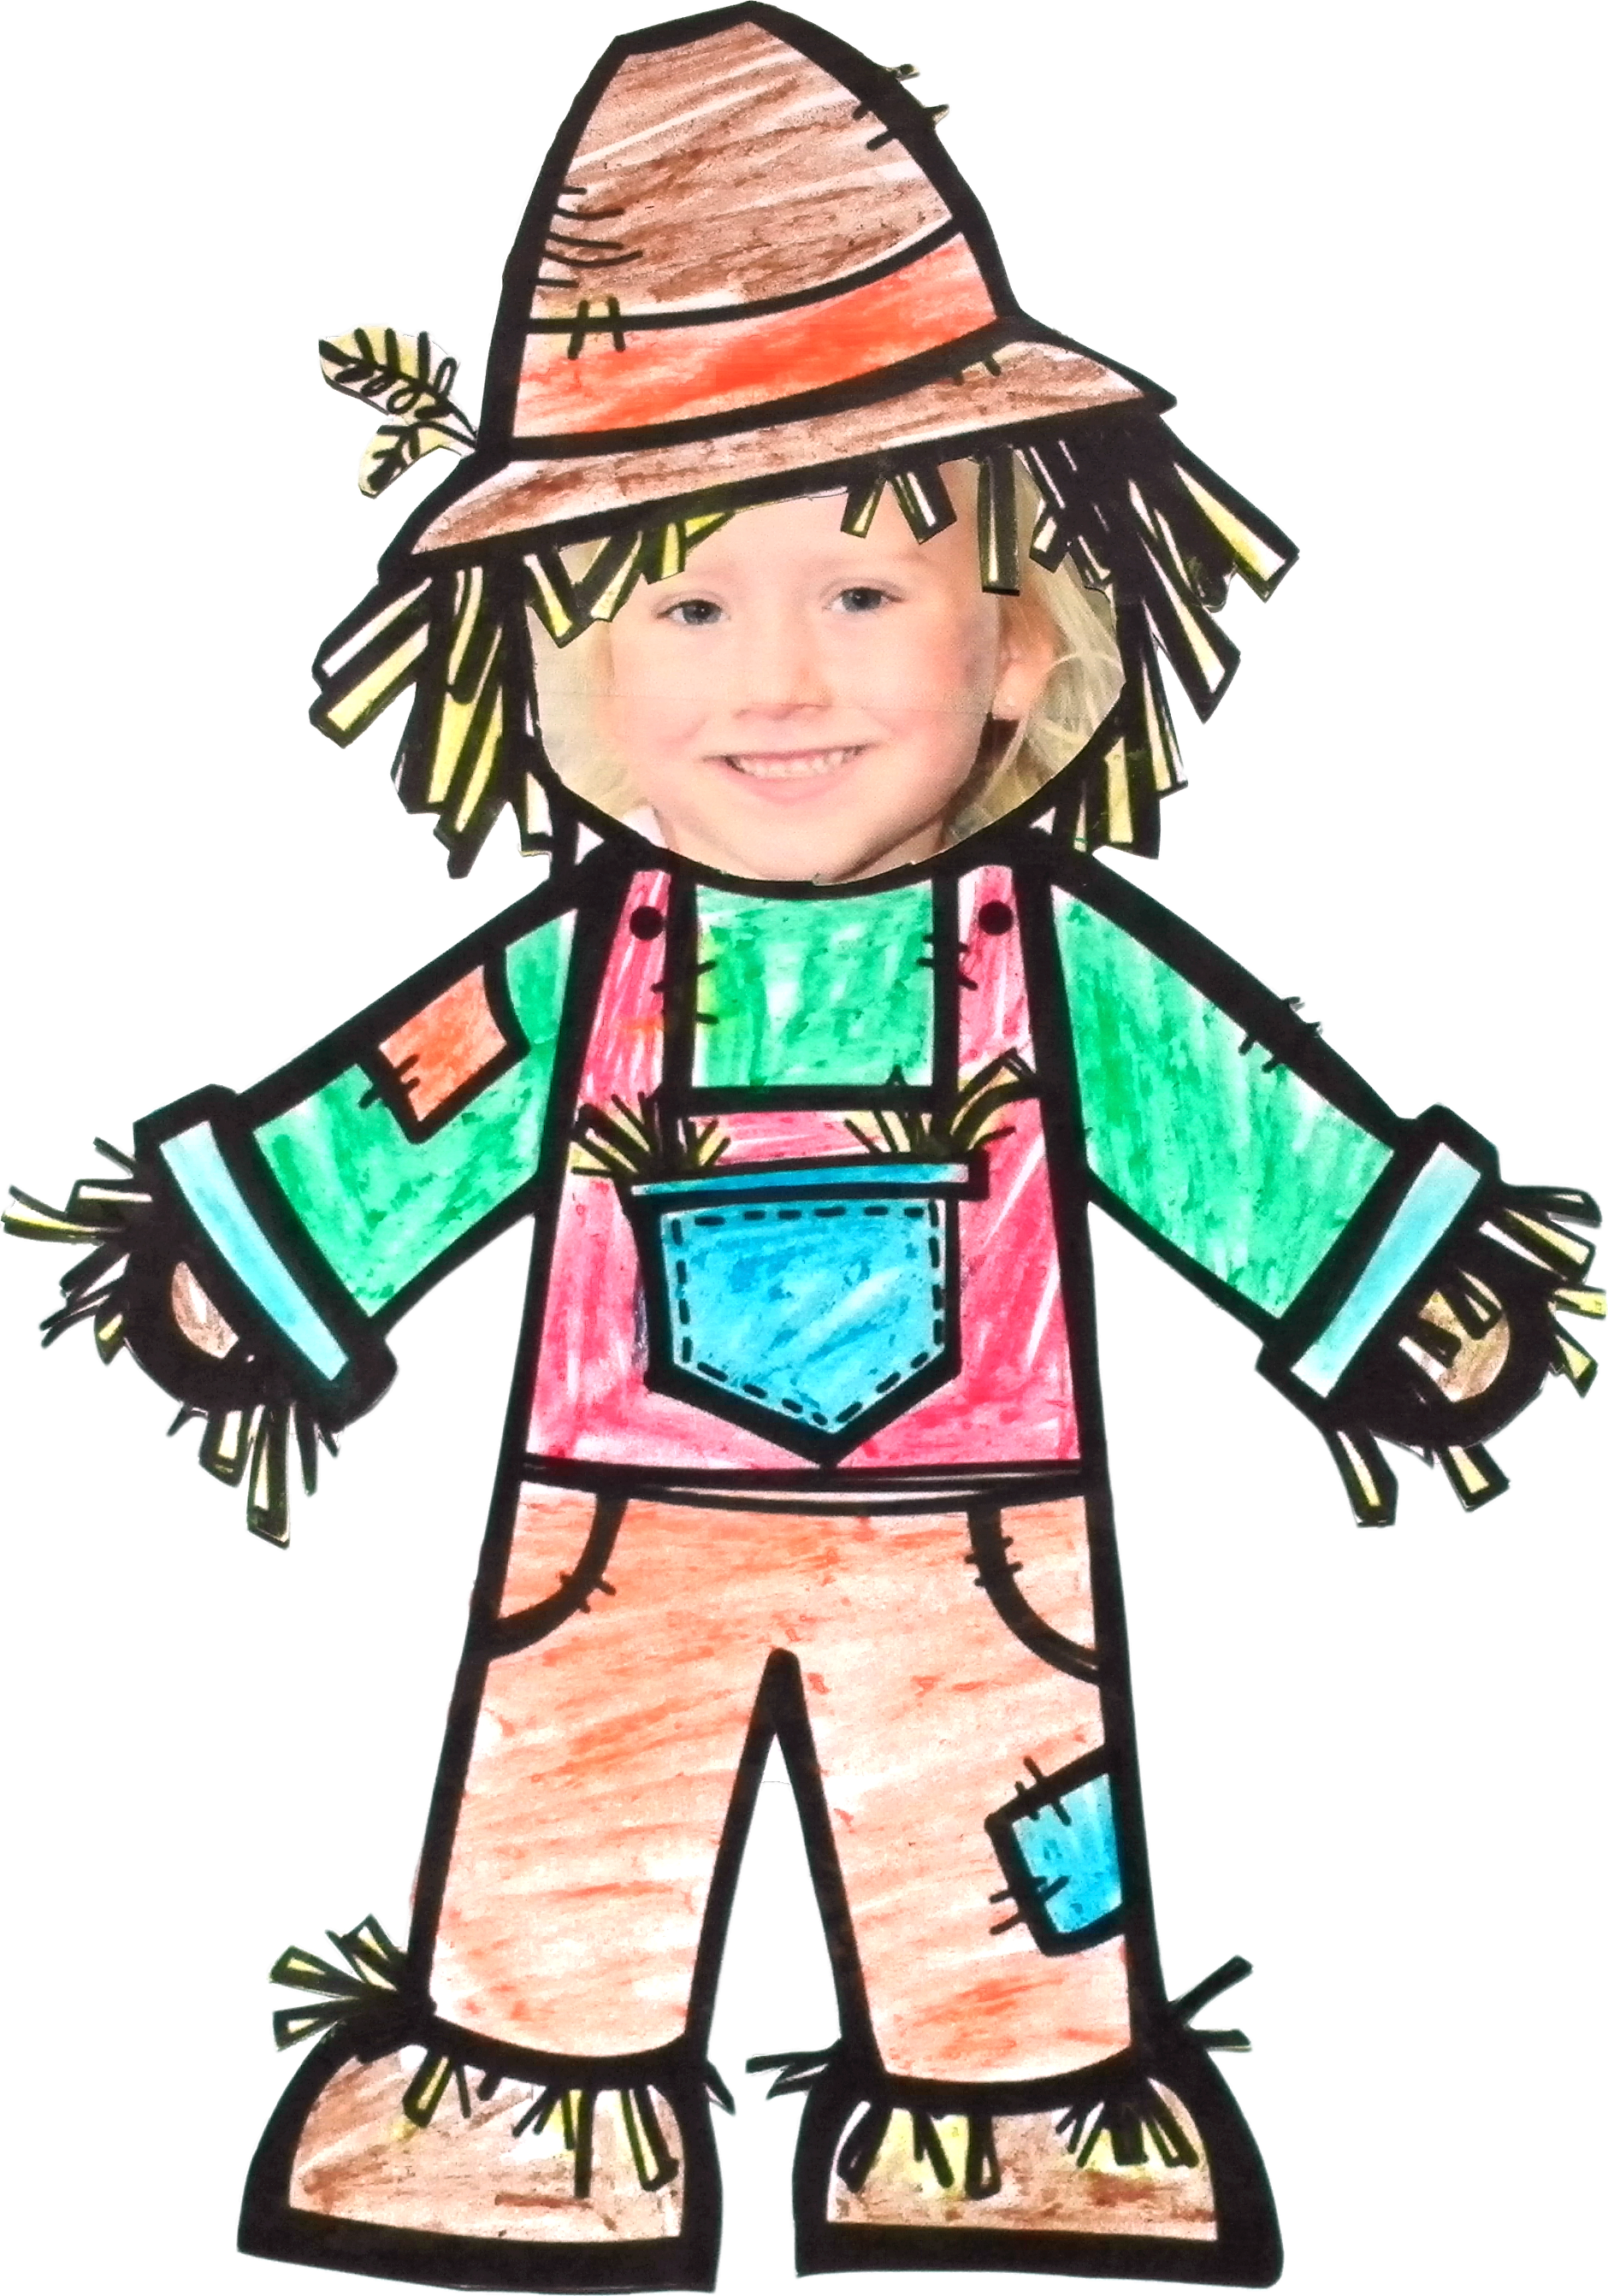 Child template has been. Scarecrow clipart fun